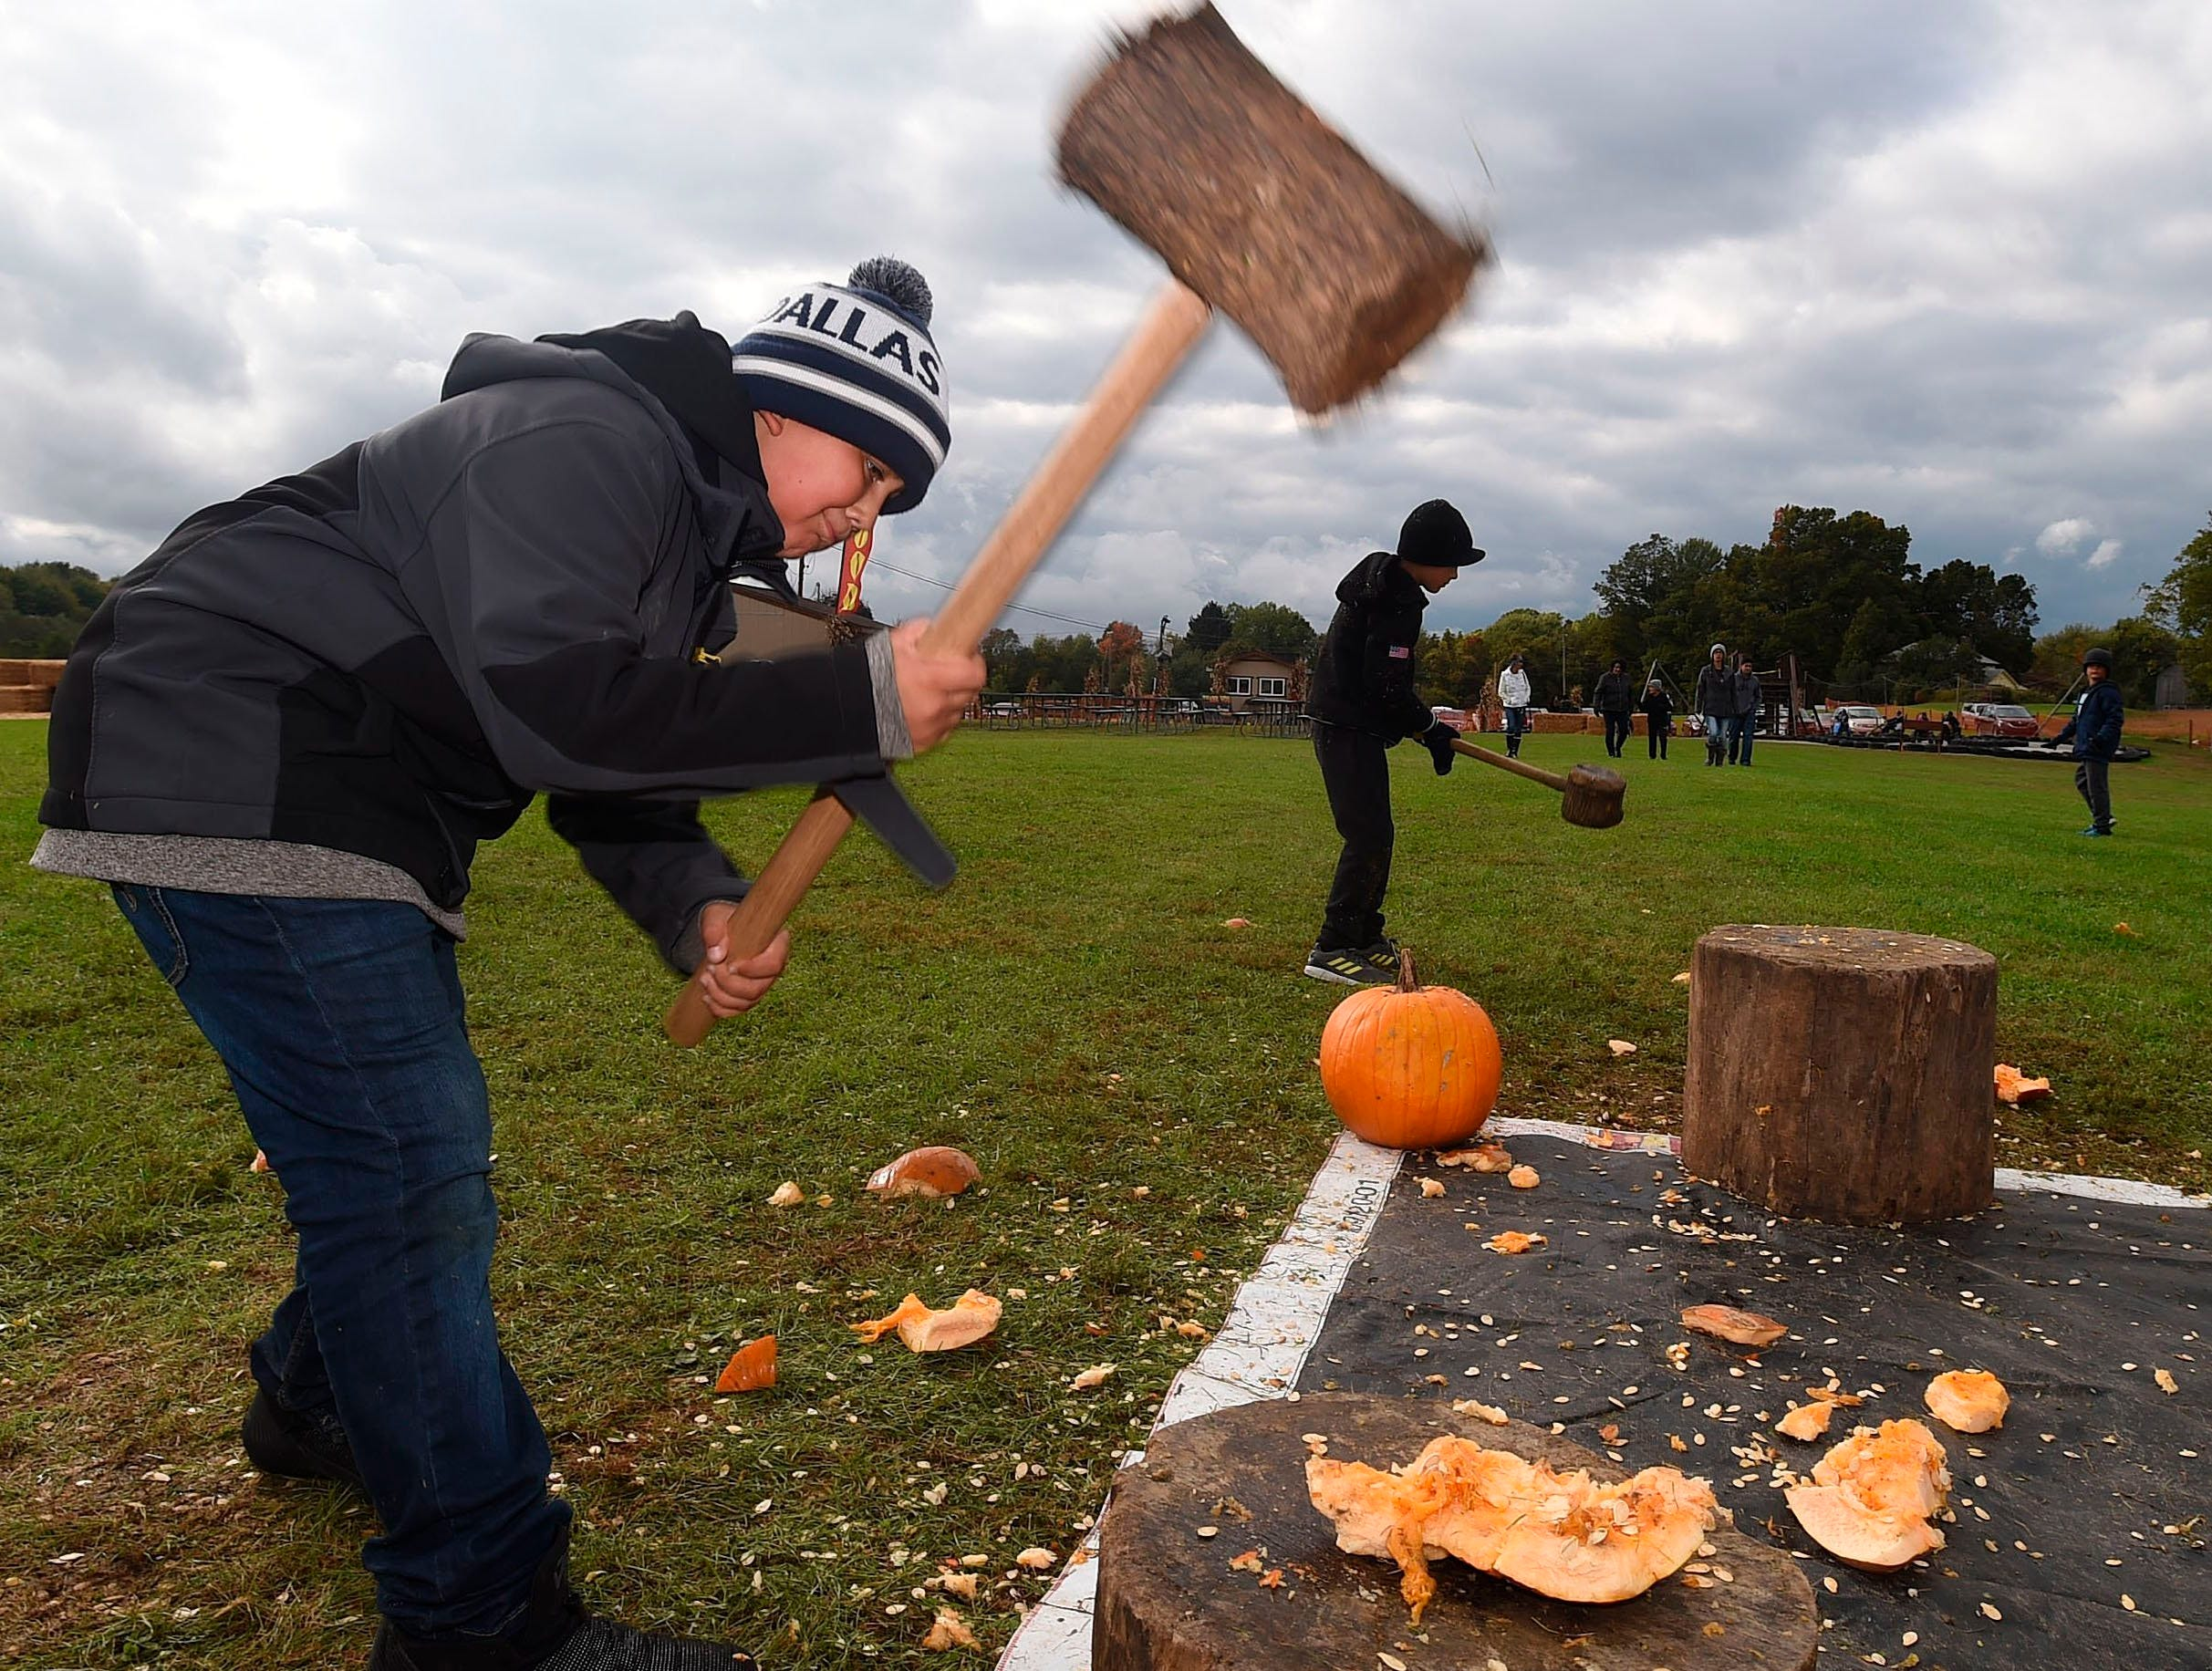 Zion Thomas, 10, of Ashtabula, Ohio, smashes pumpkins at Sissons Pumpkin Patch in Girard Township, Pa., Saturday, Oct. 13, 2018. (Jack Hanrahan/Erie Times-News via AP) ORG XMIT: PAERI601